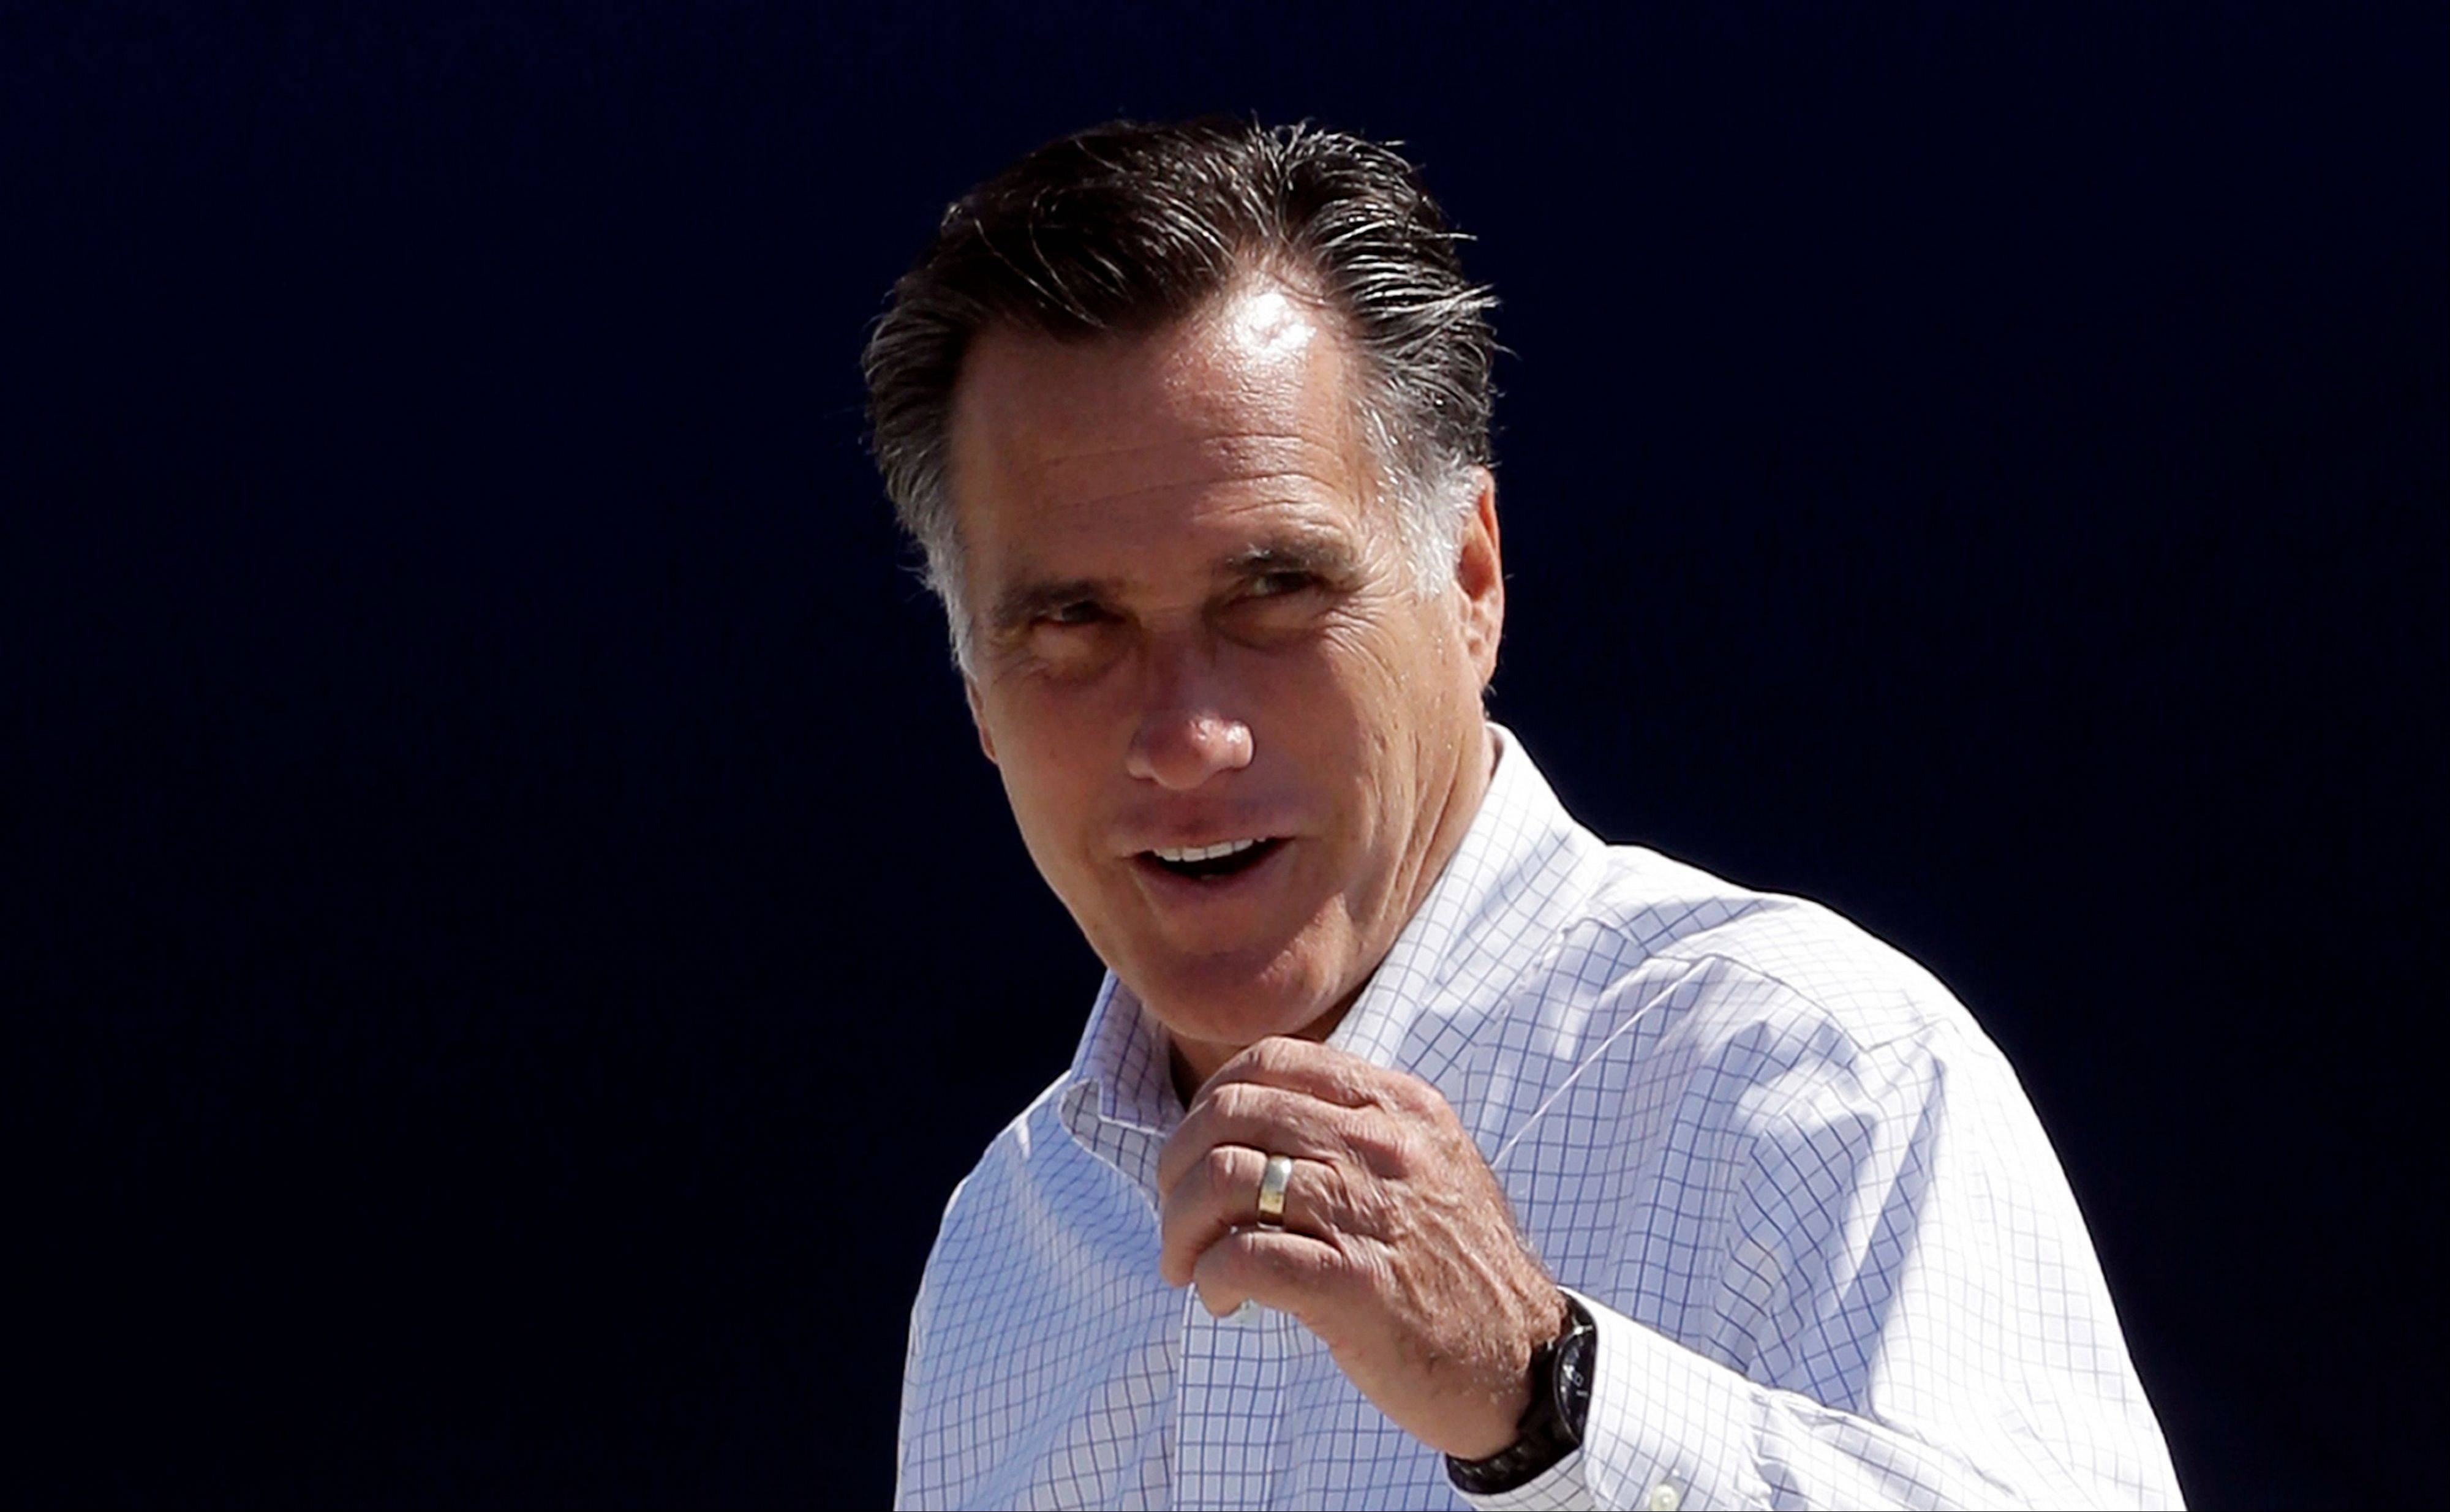 Republican presidential candidate and former Massachusetts Gov. Mitt Romney gets ready to board his campaign plane in Los Angeles, Sunday, Sept. 23, 2012.